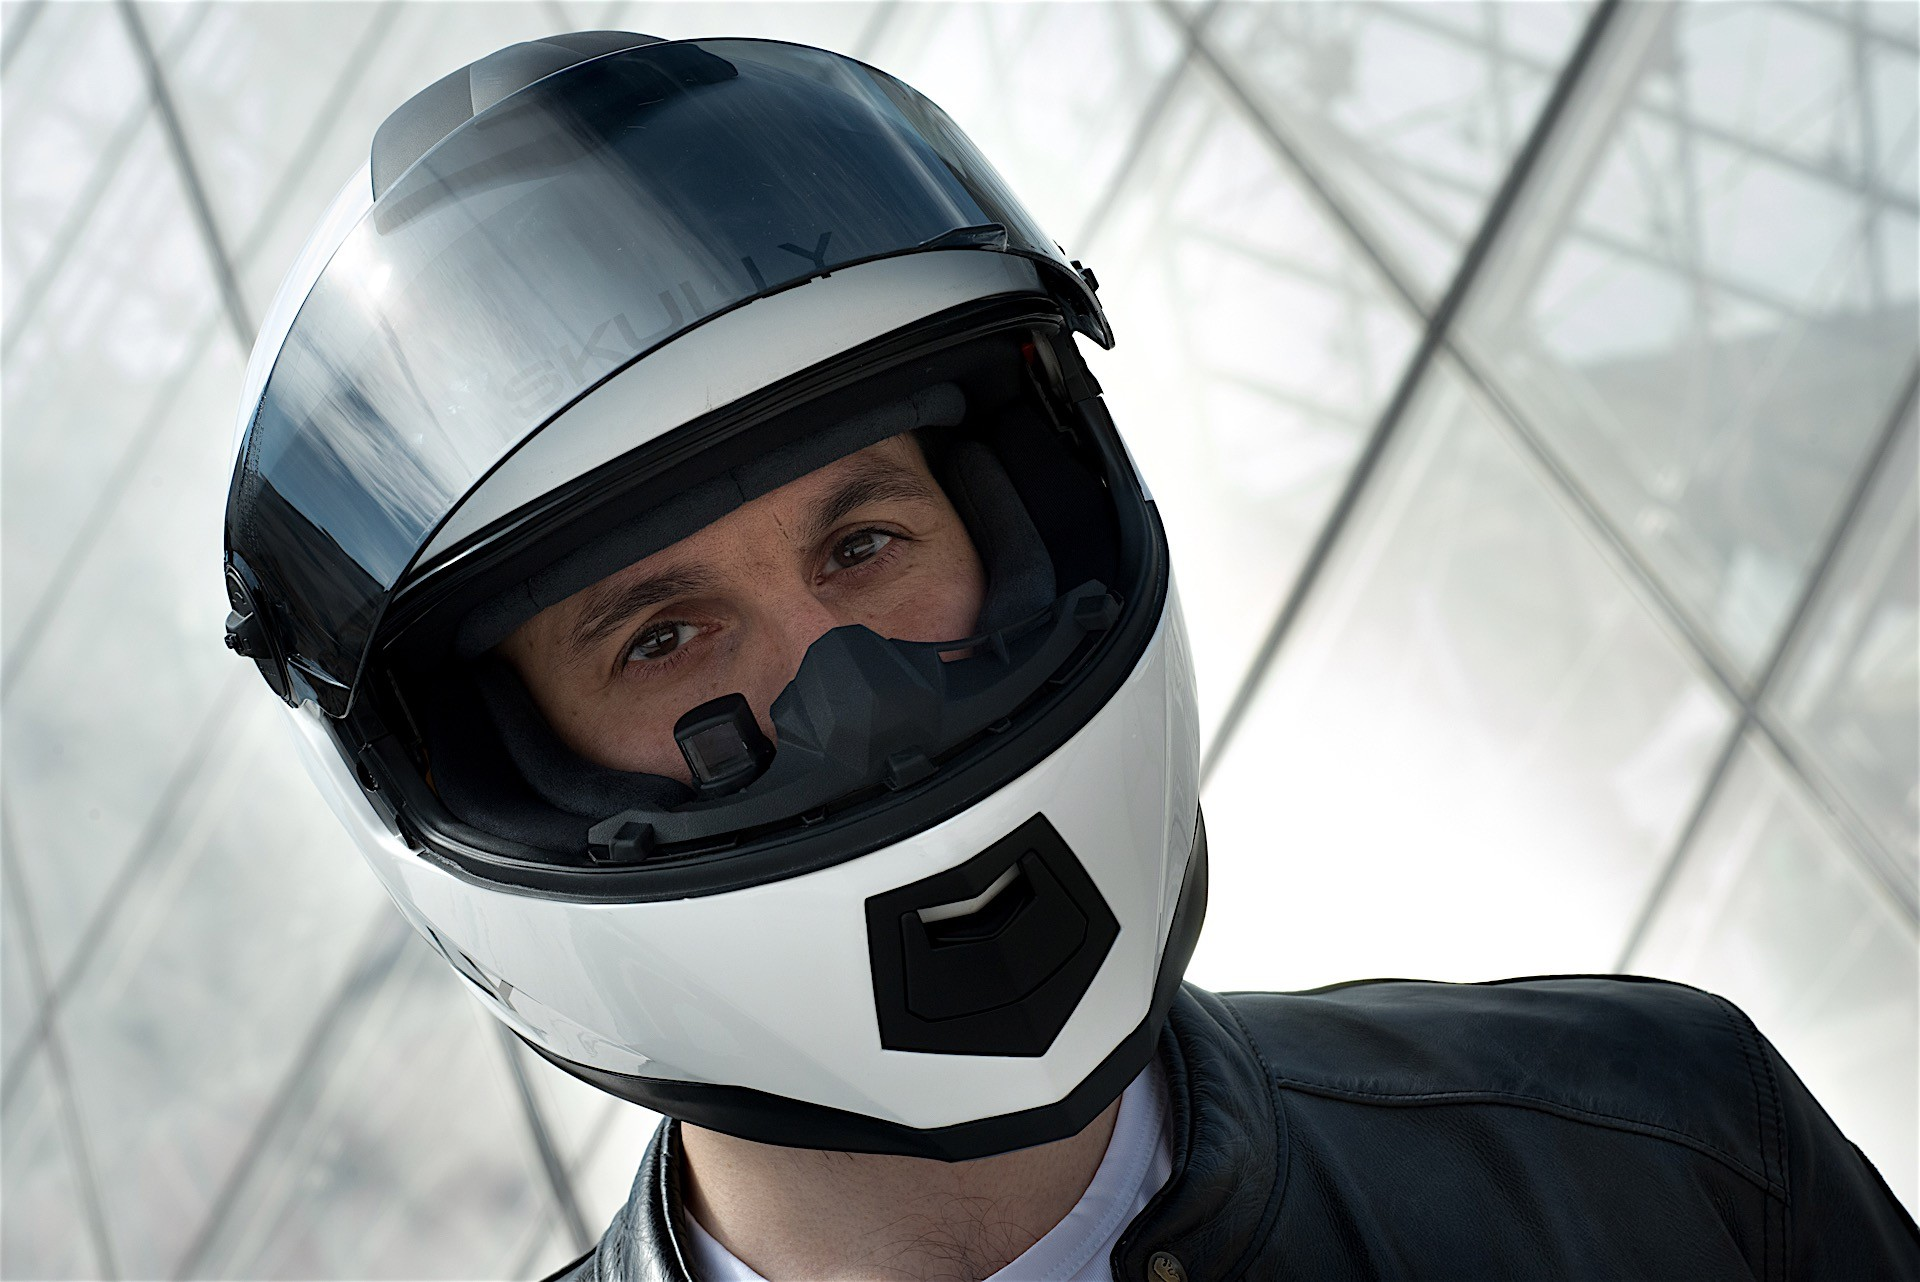 LiveMap, the Future of Motorcycle Helmets and Navigation ...